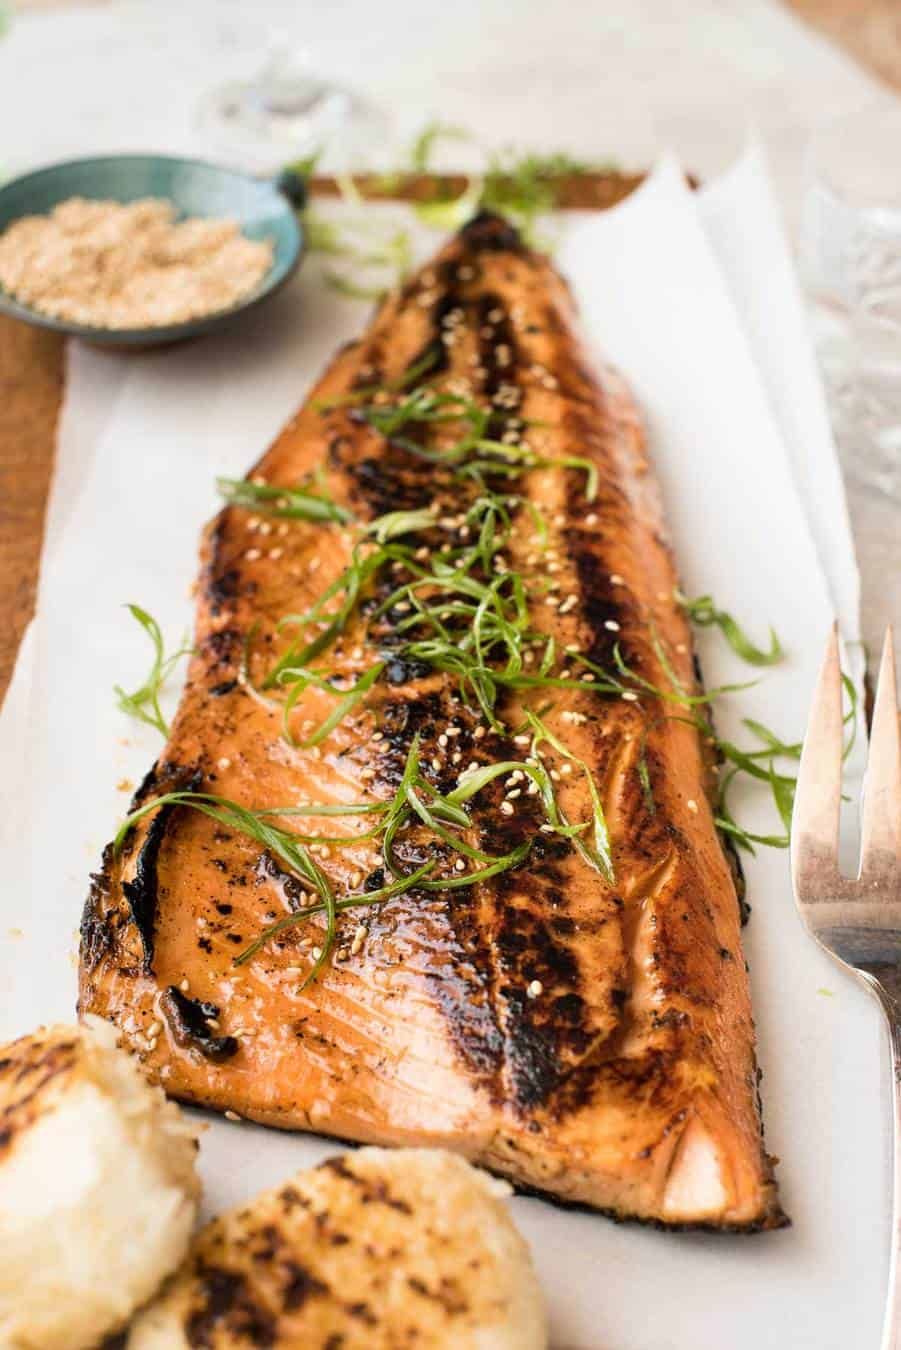 Japanese miso marinated side of salmon barbecue or bake an error occurred ccuart Choice Image